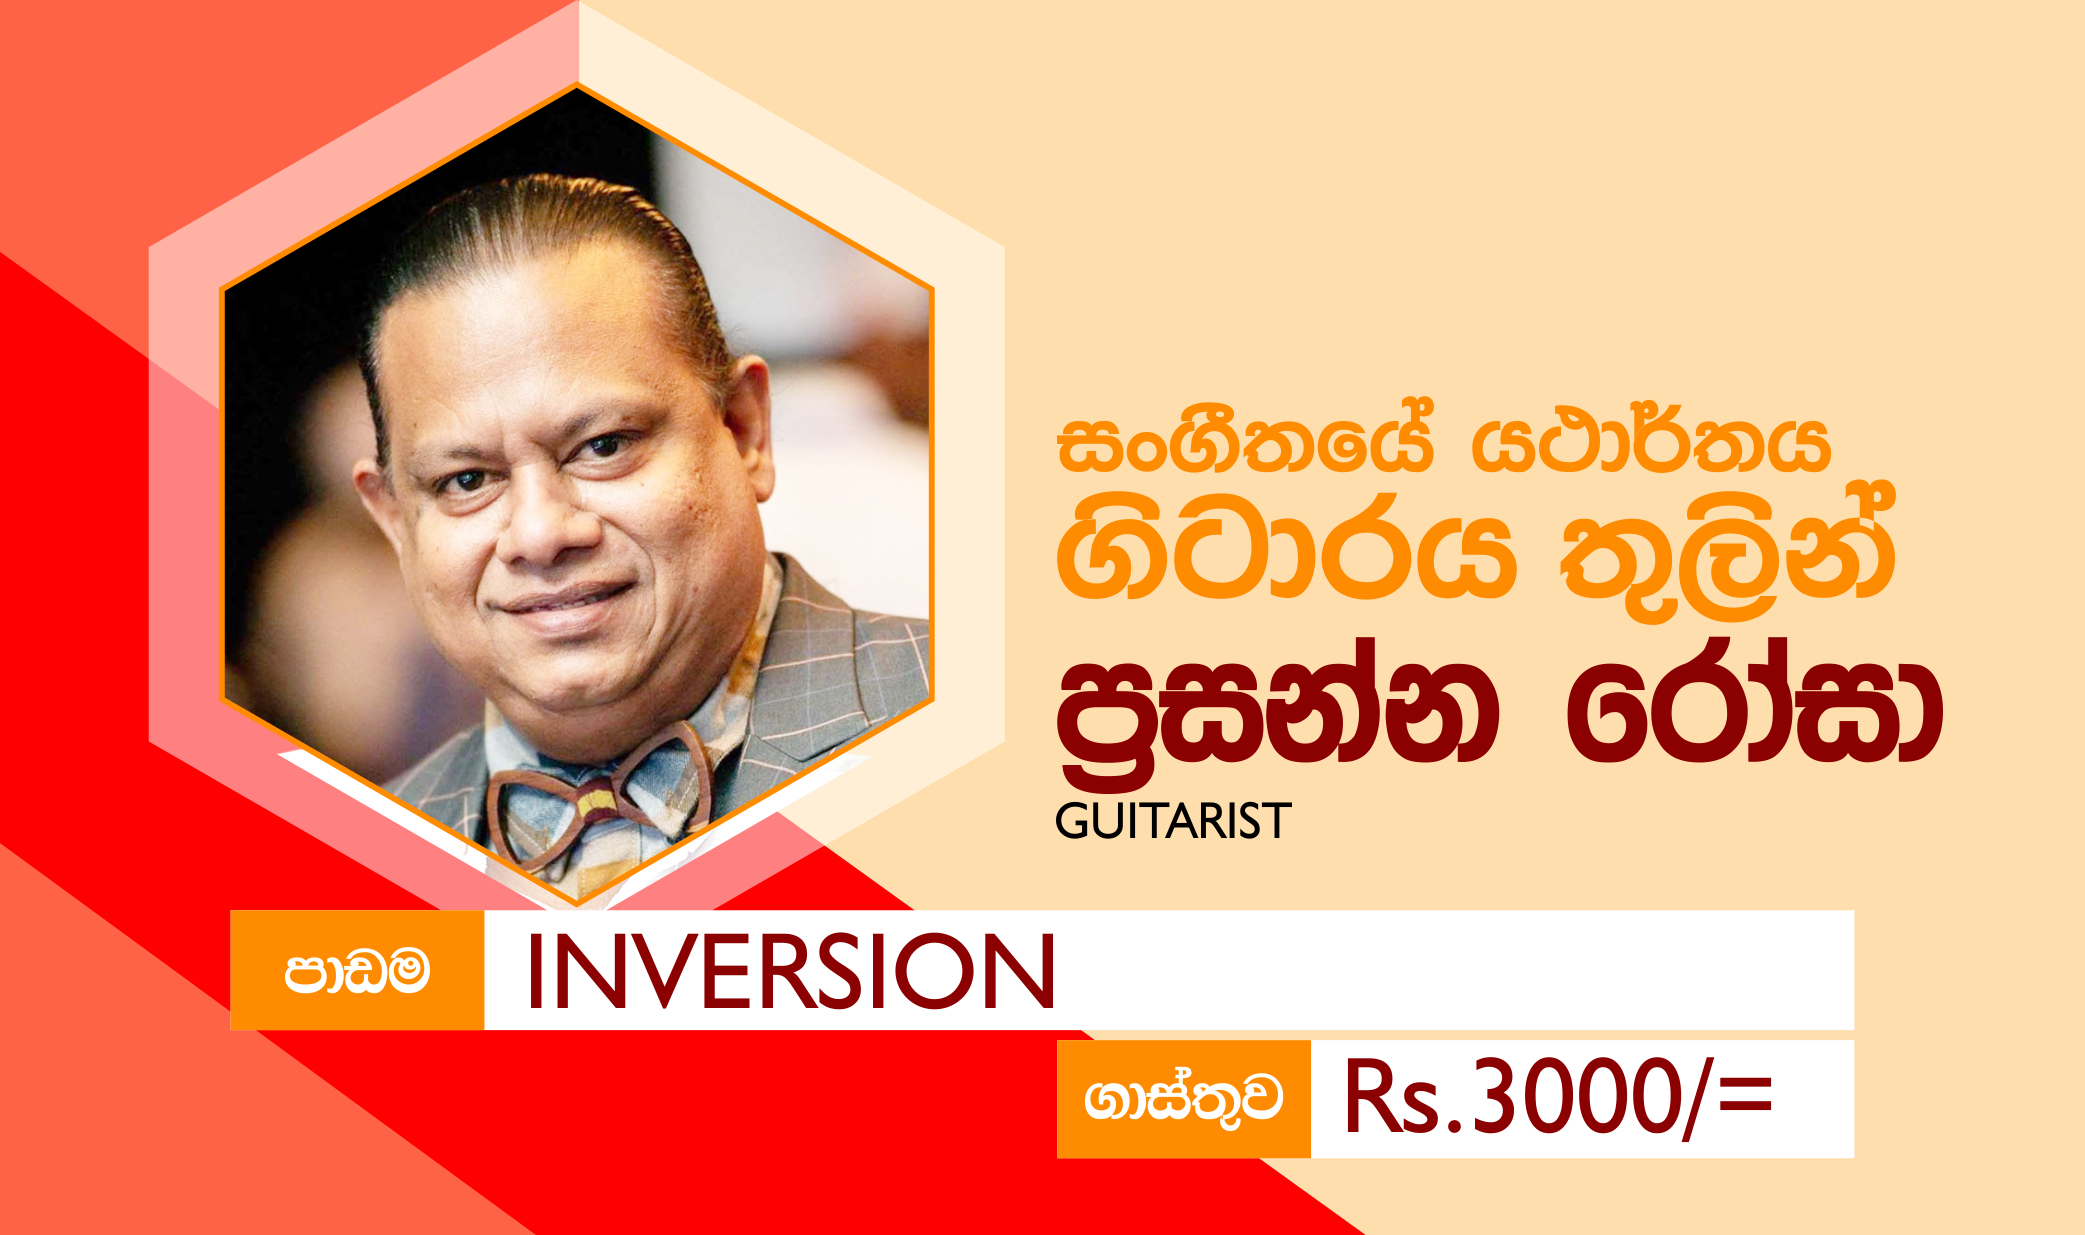 Guitar Practice - Inversion for Beginners [Course 02] - (ගිටාර් වාදන පුහුණුව - Inversion)